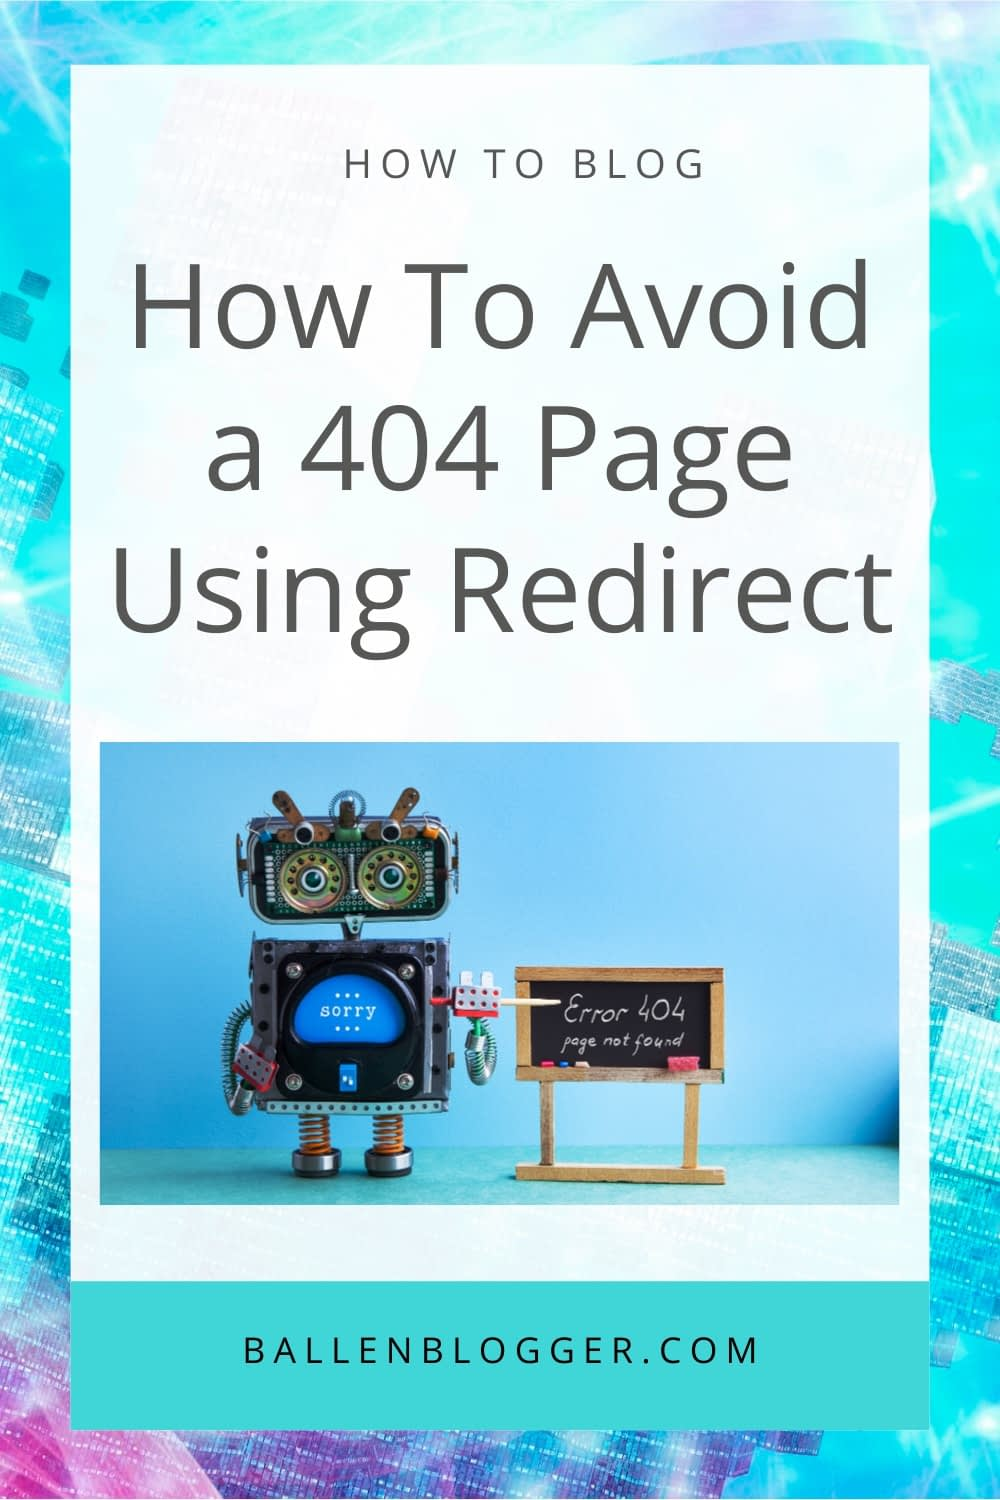 A Redirect, quite simply is when you reroute one webpage to another. This guide will show you how to redirect a URL using various methods.